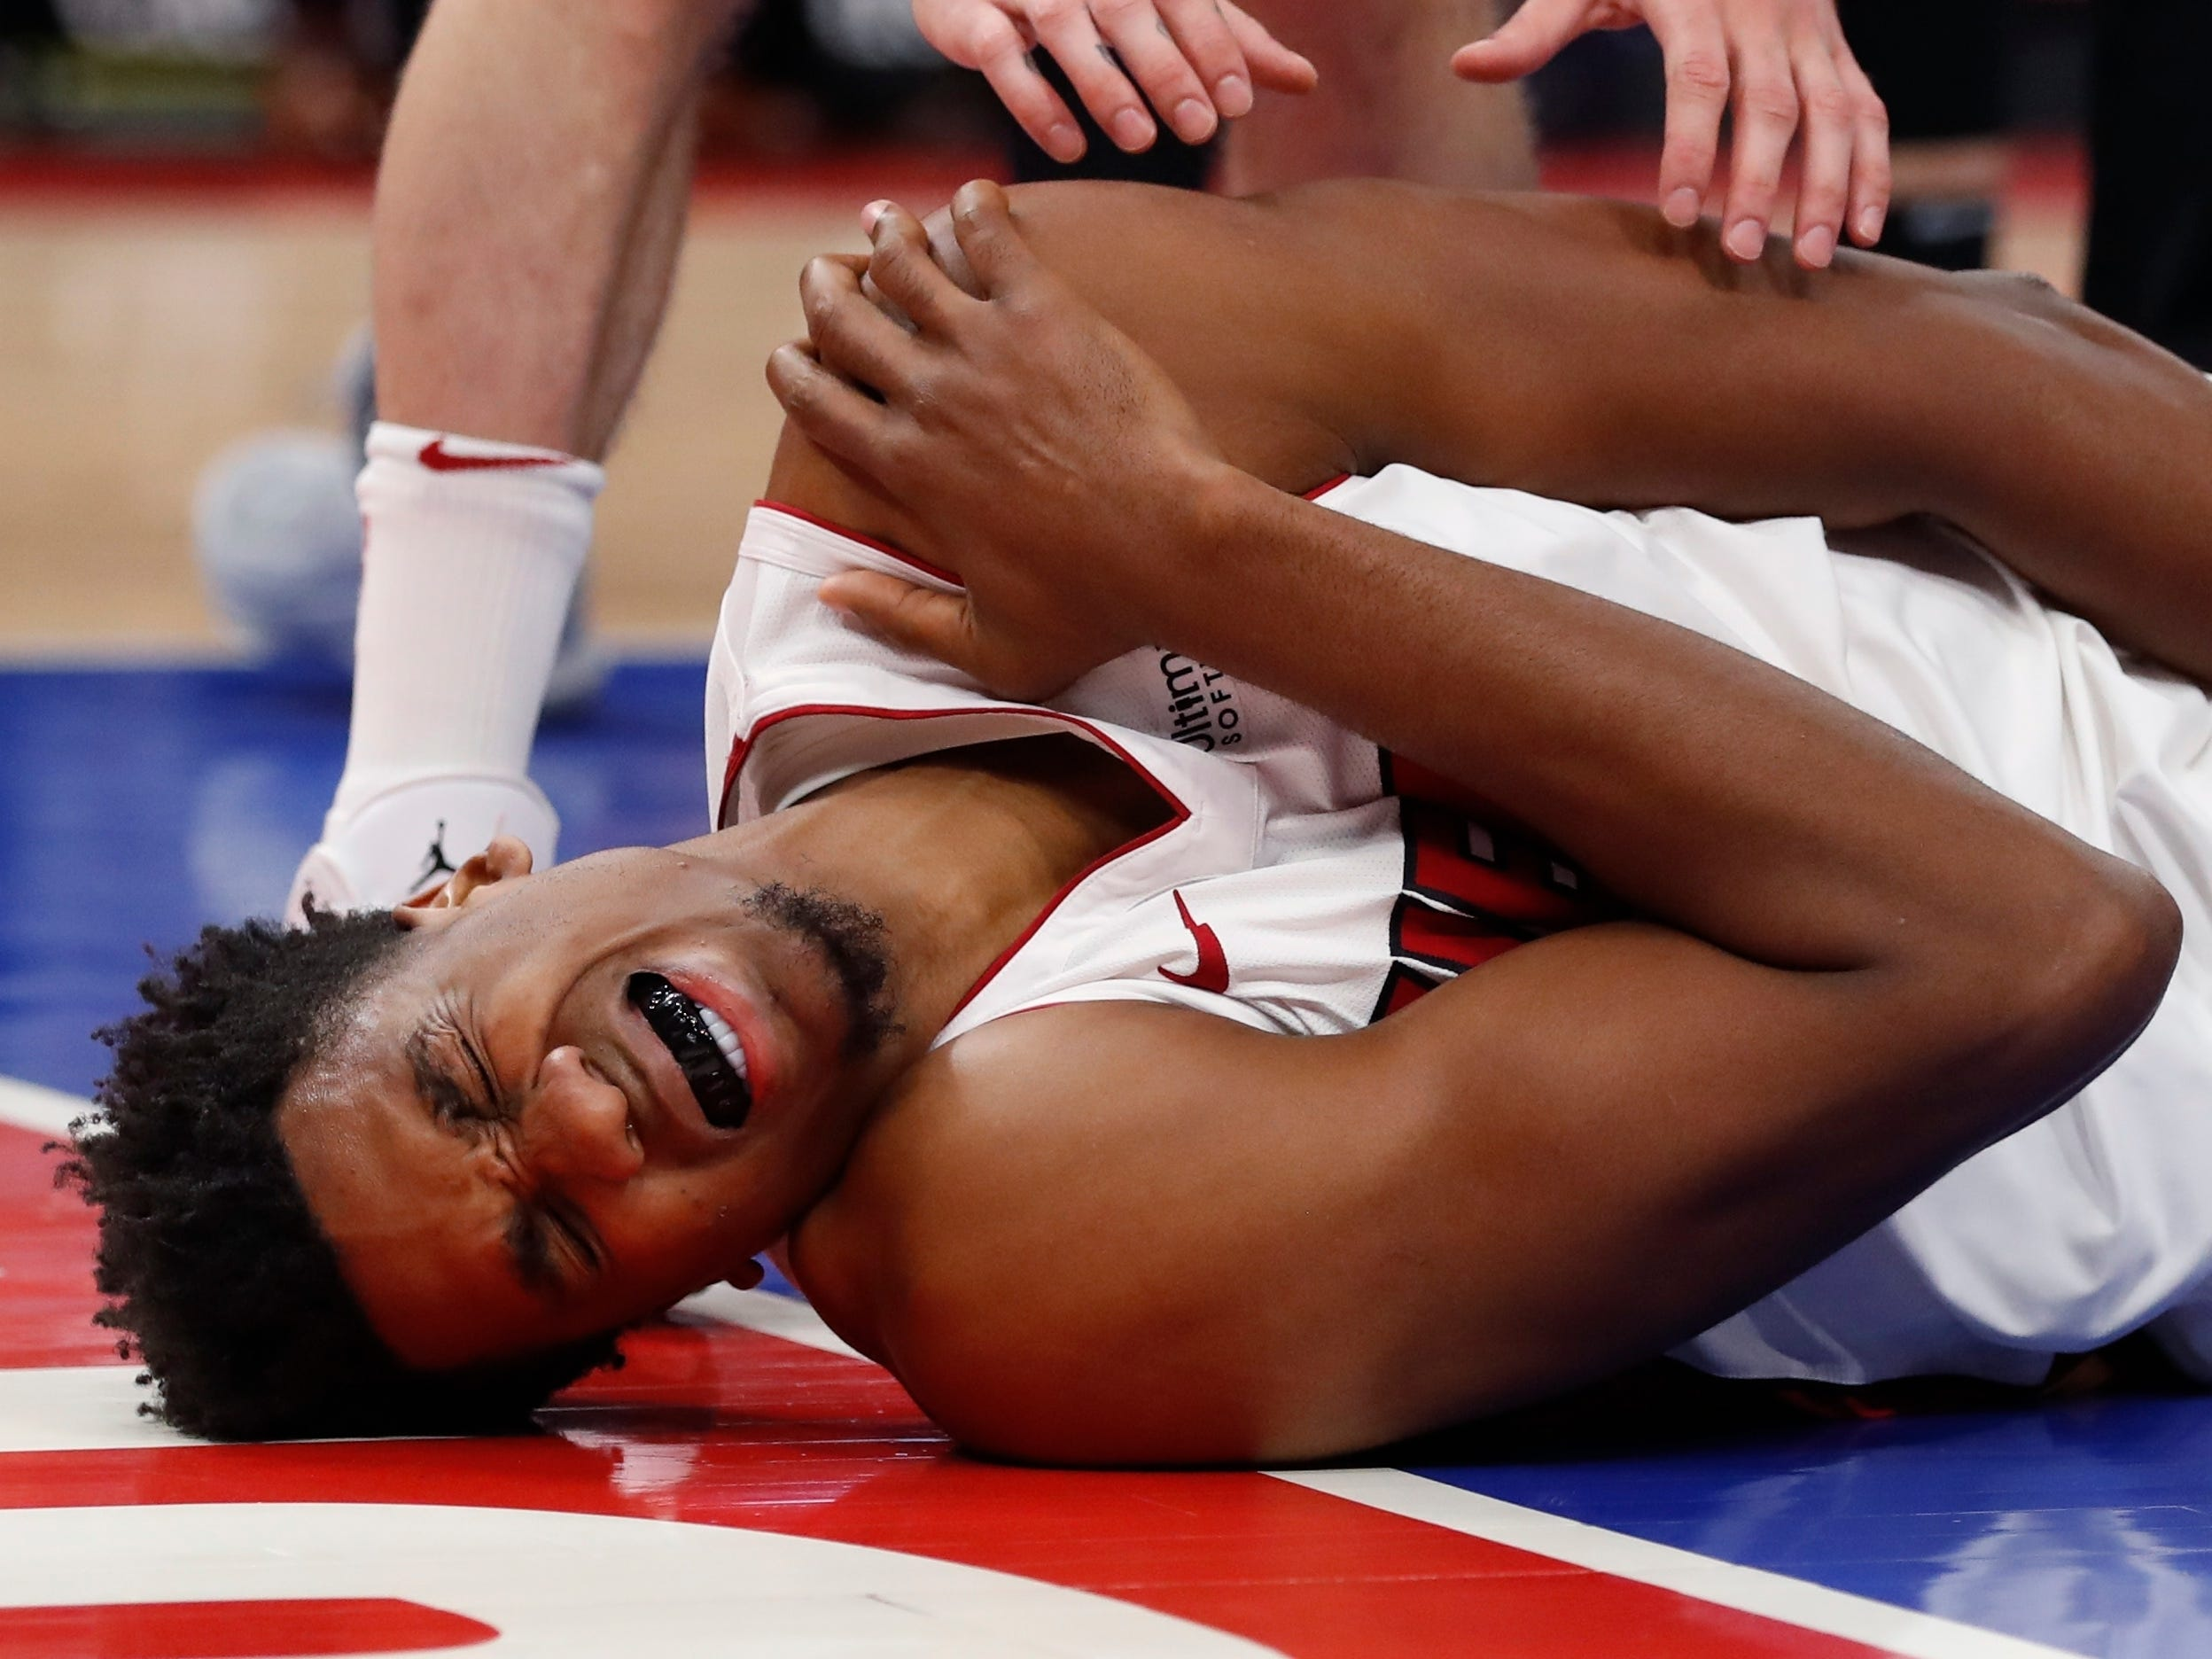 Miami Heat center Hassan Whiteside grimaces after falling on his shoulder after a foul by Detroit Pistons center Zaza Pachulia during the second half.